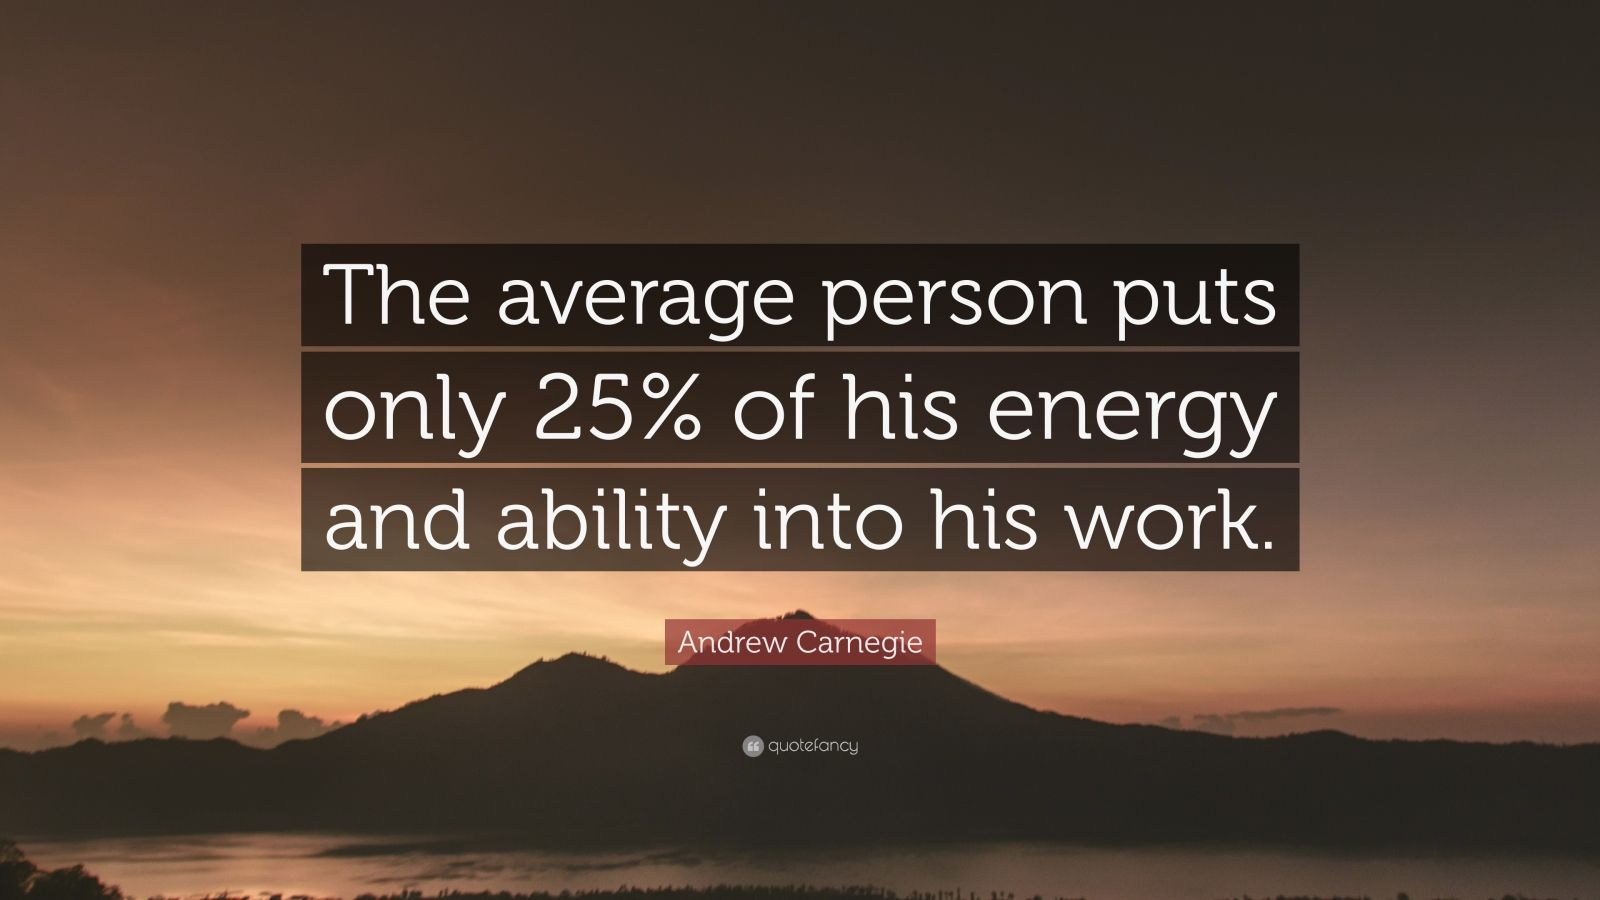 """Andrew Carnegie Quote: """"The average person puts only 25% of his energy and ability into his work."""""""